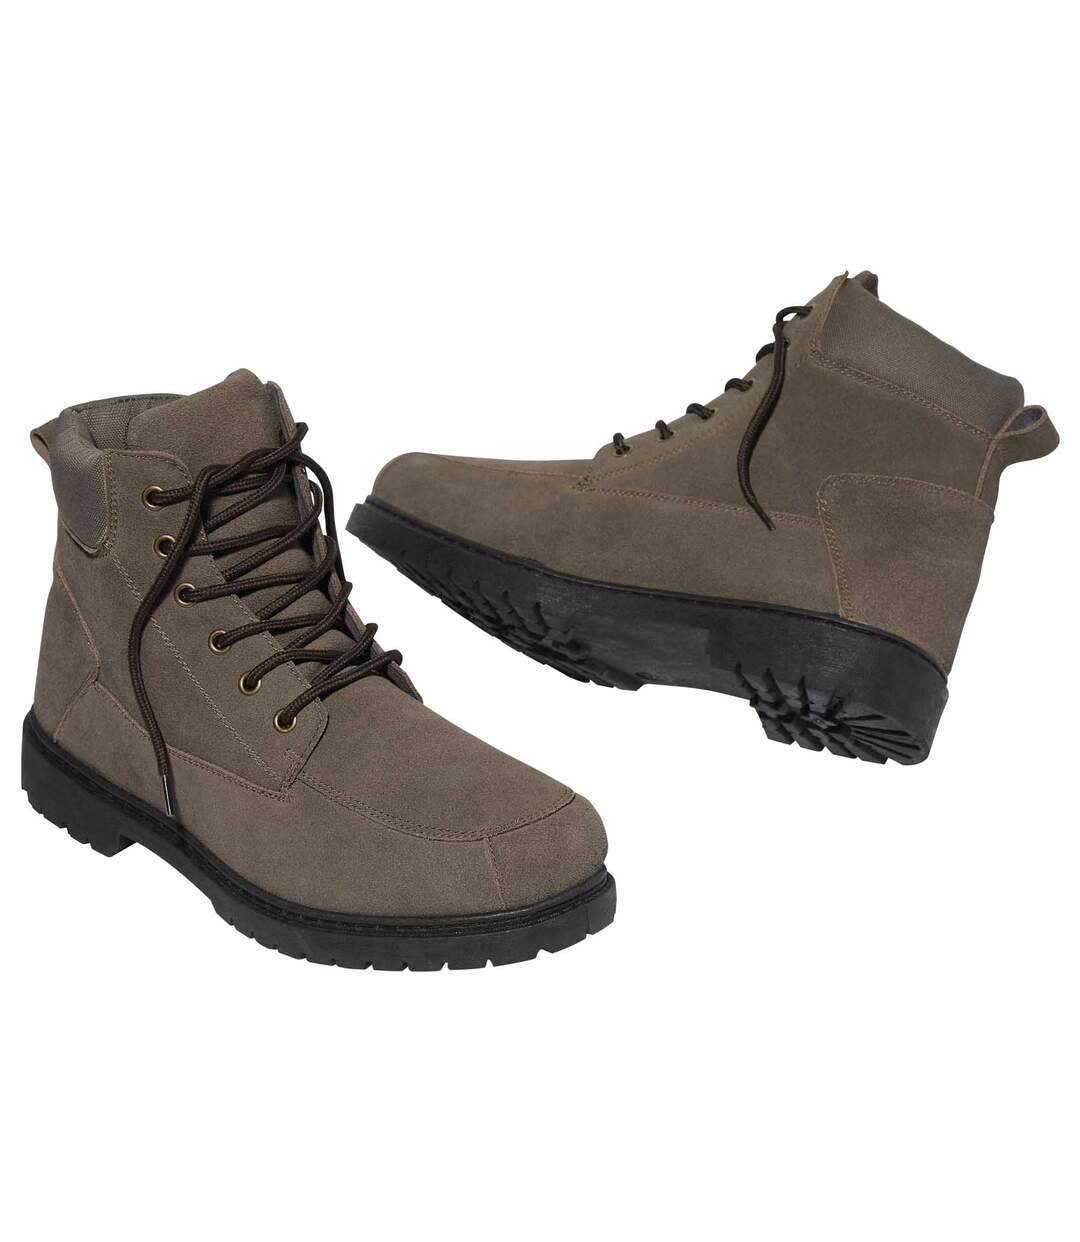 Men's Brown Outdoor Ankle Boots